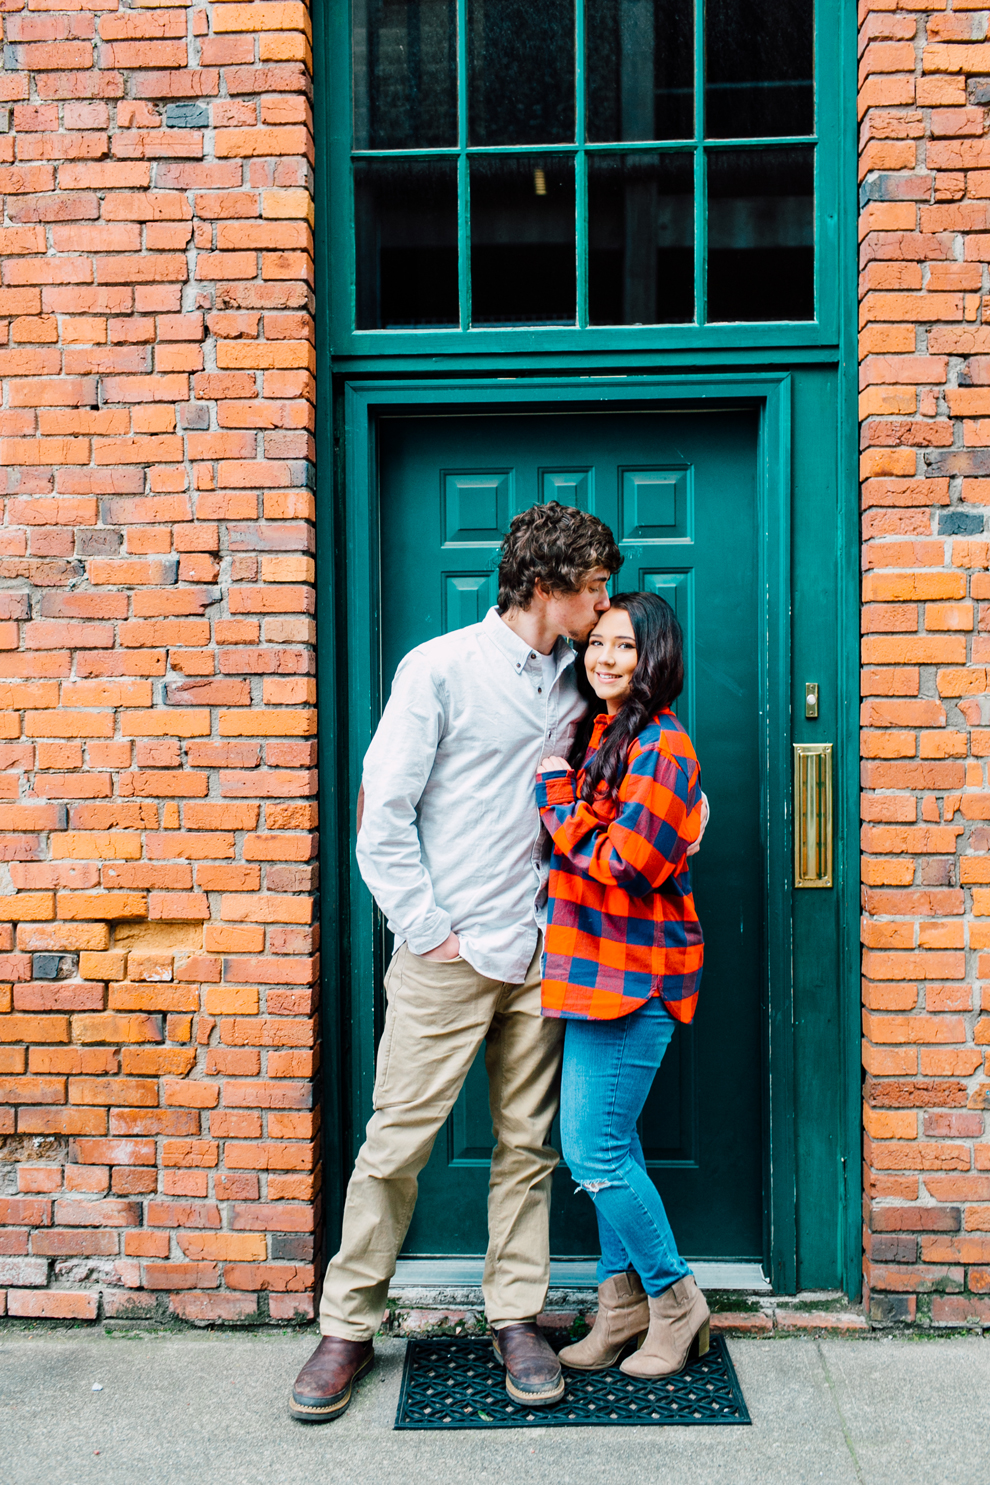 013-bellingham-washington-engagement-photographer-woods-coffee-modsock-katheryn-moran-carlee.jpg